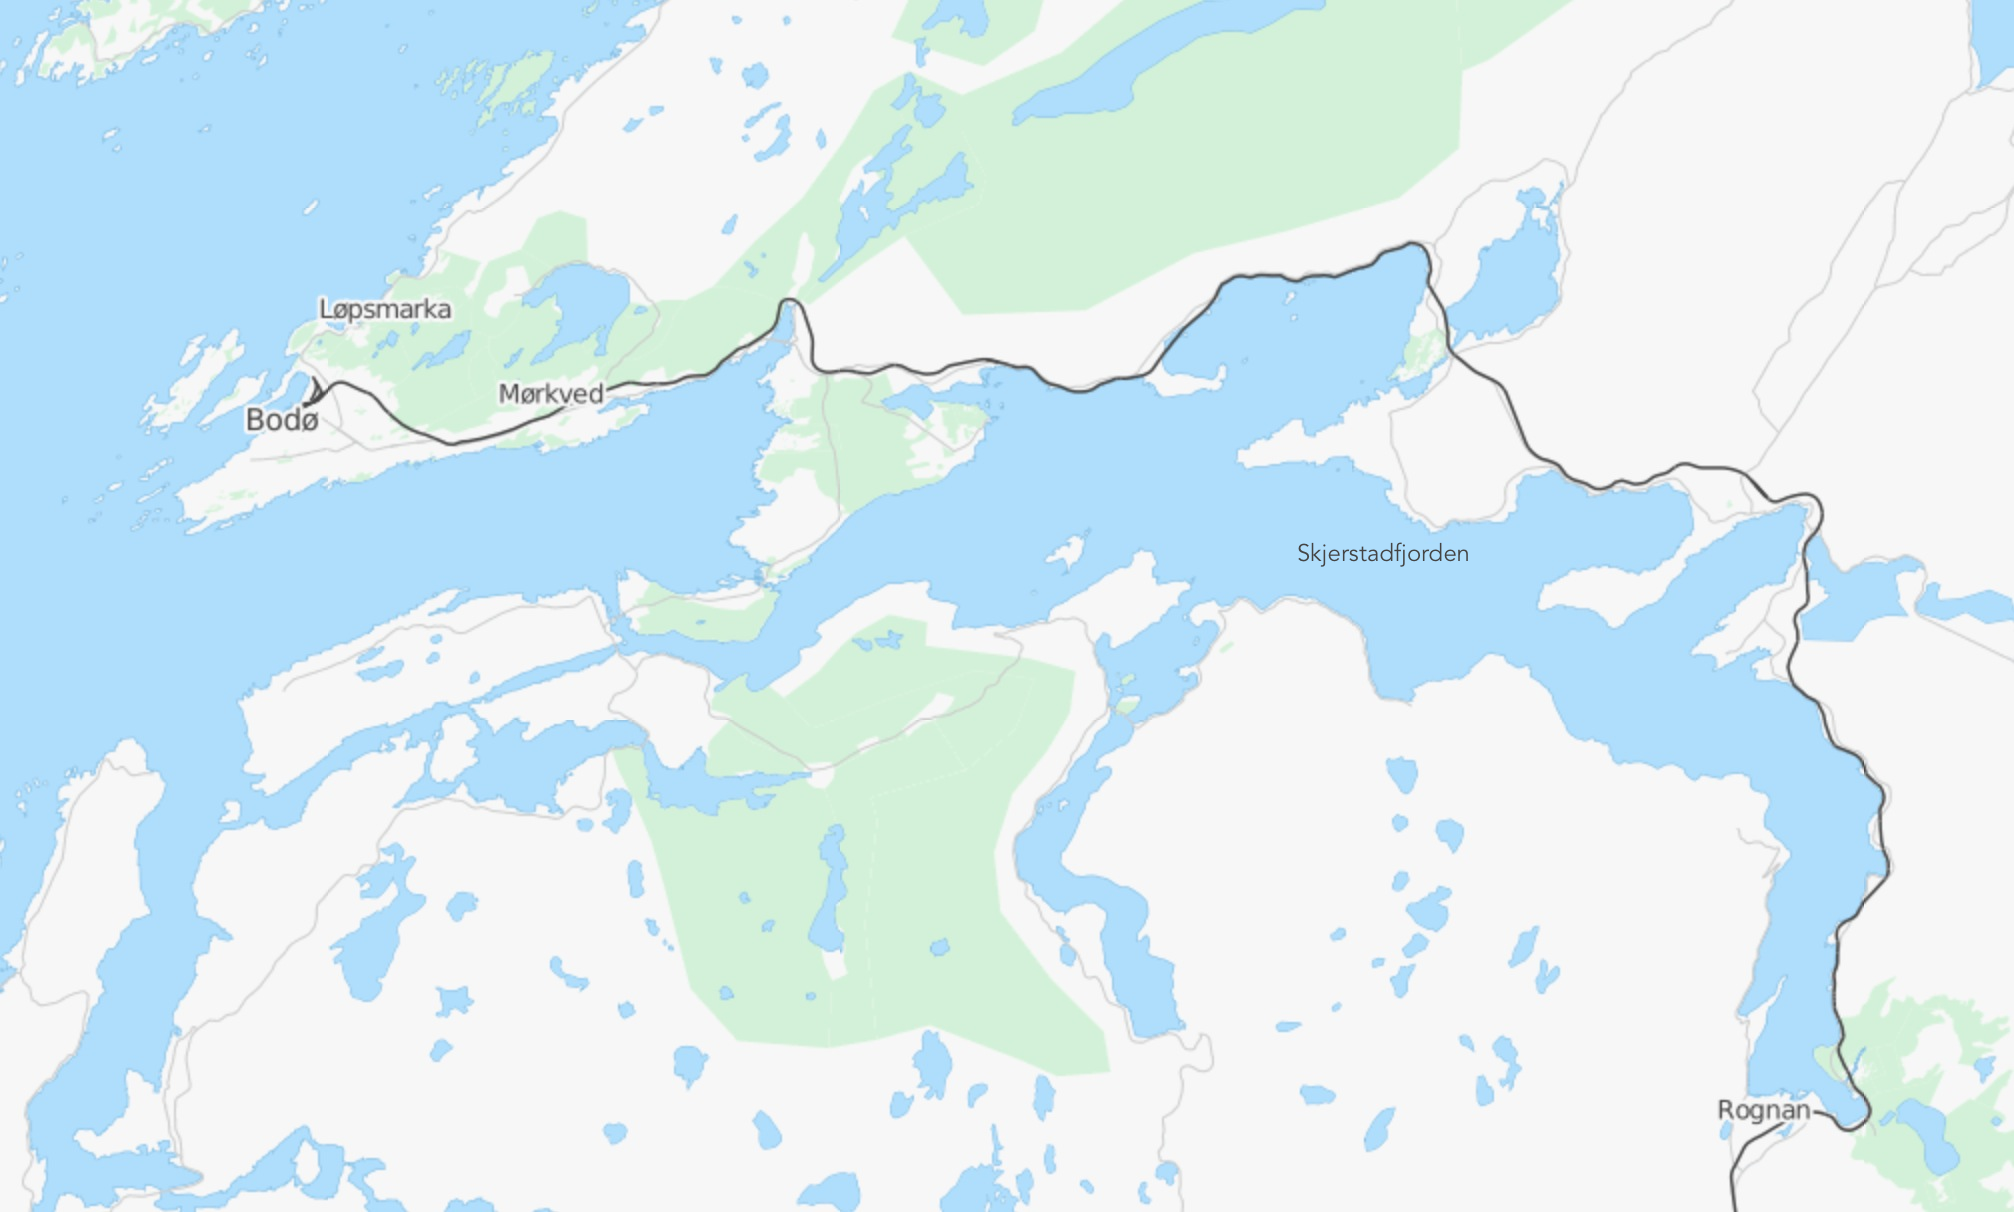 OpenStreetMaps showing the fjord,Skjerstadfjorden,which the train skirts onapproach toBodø